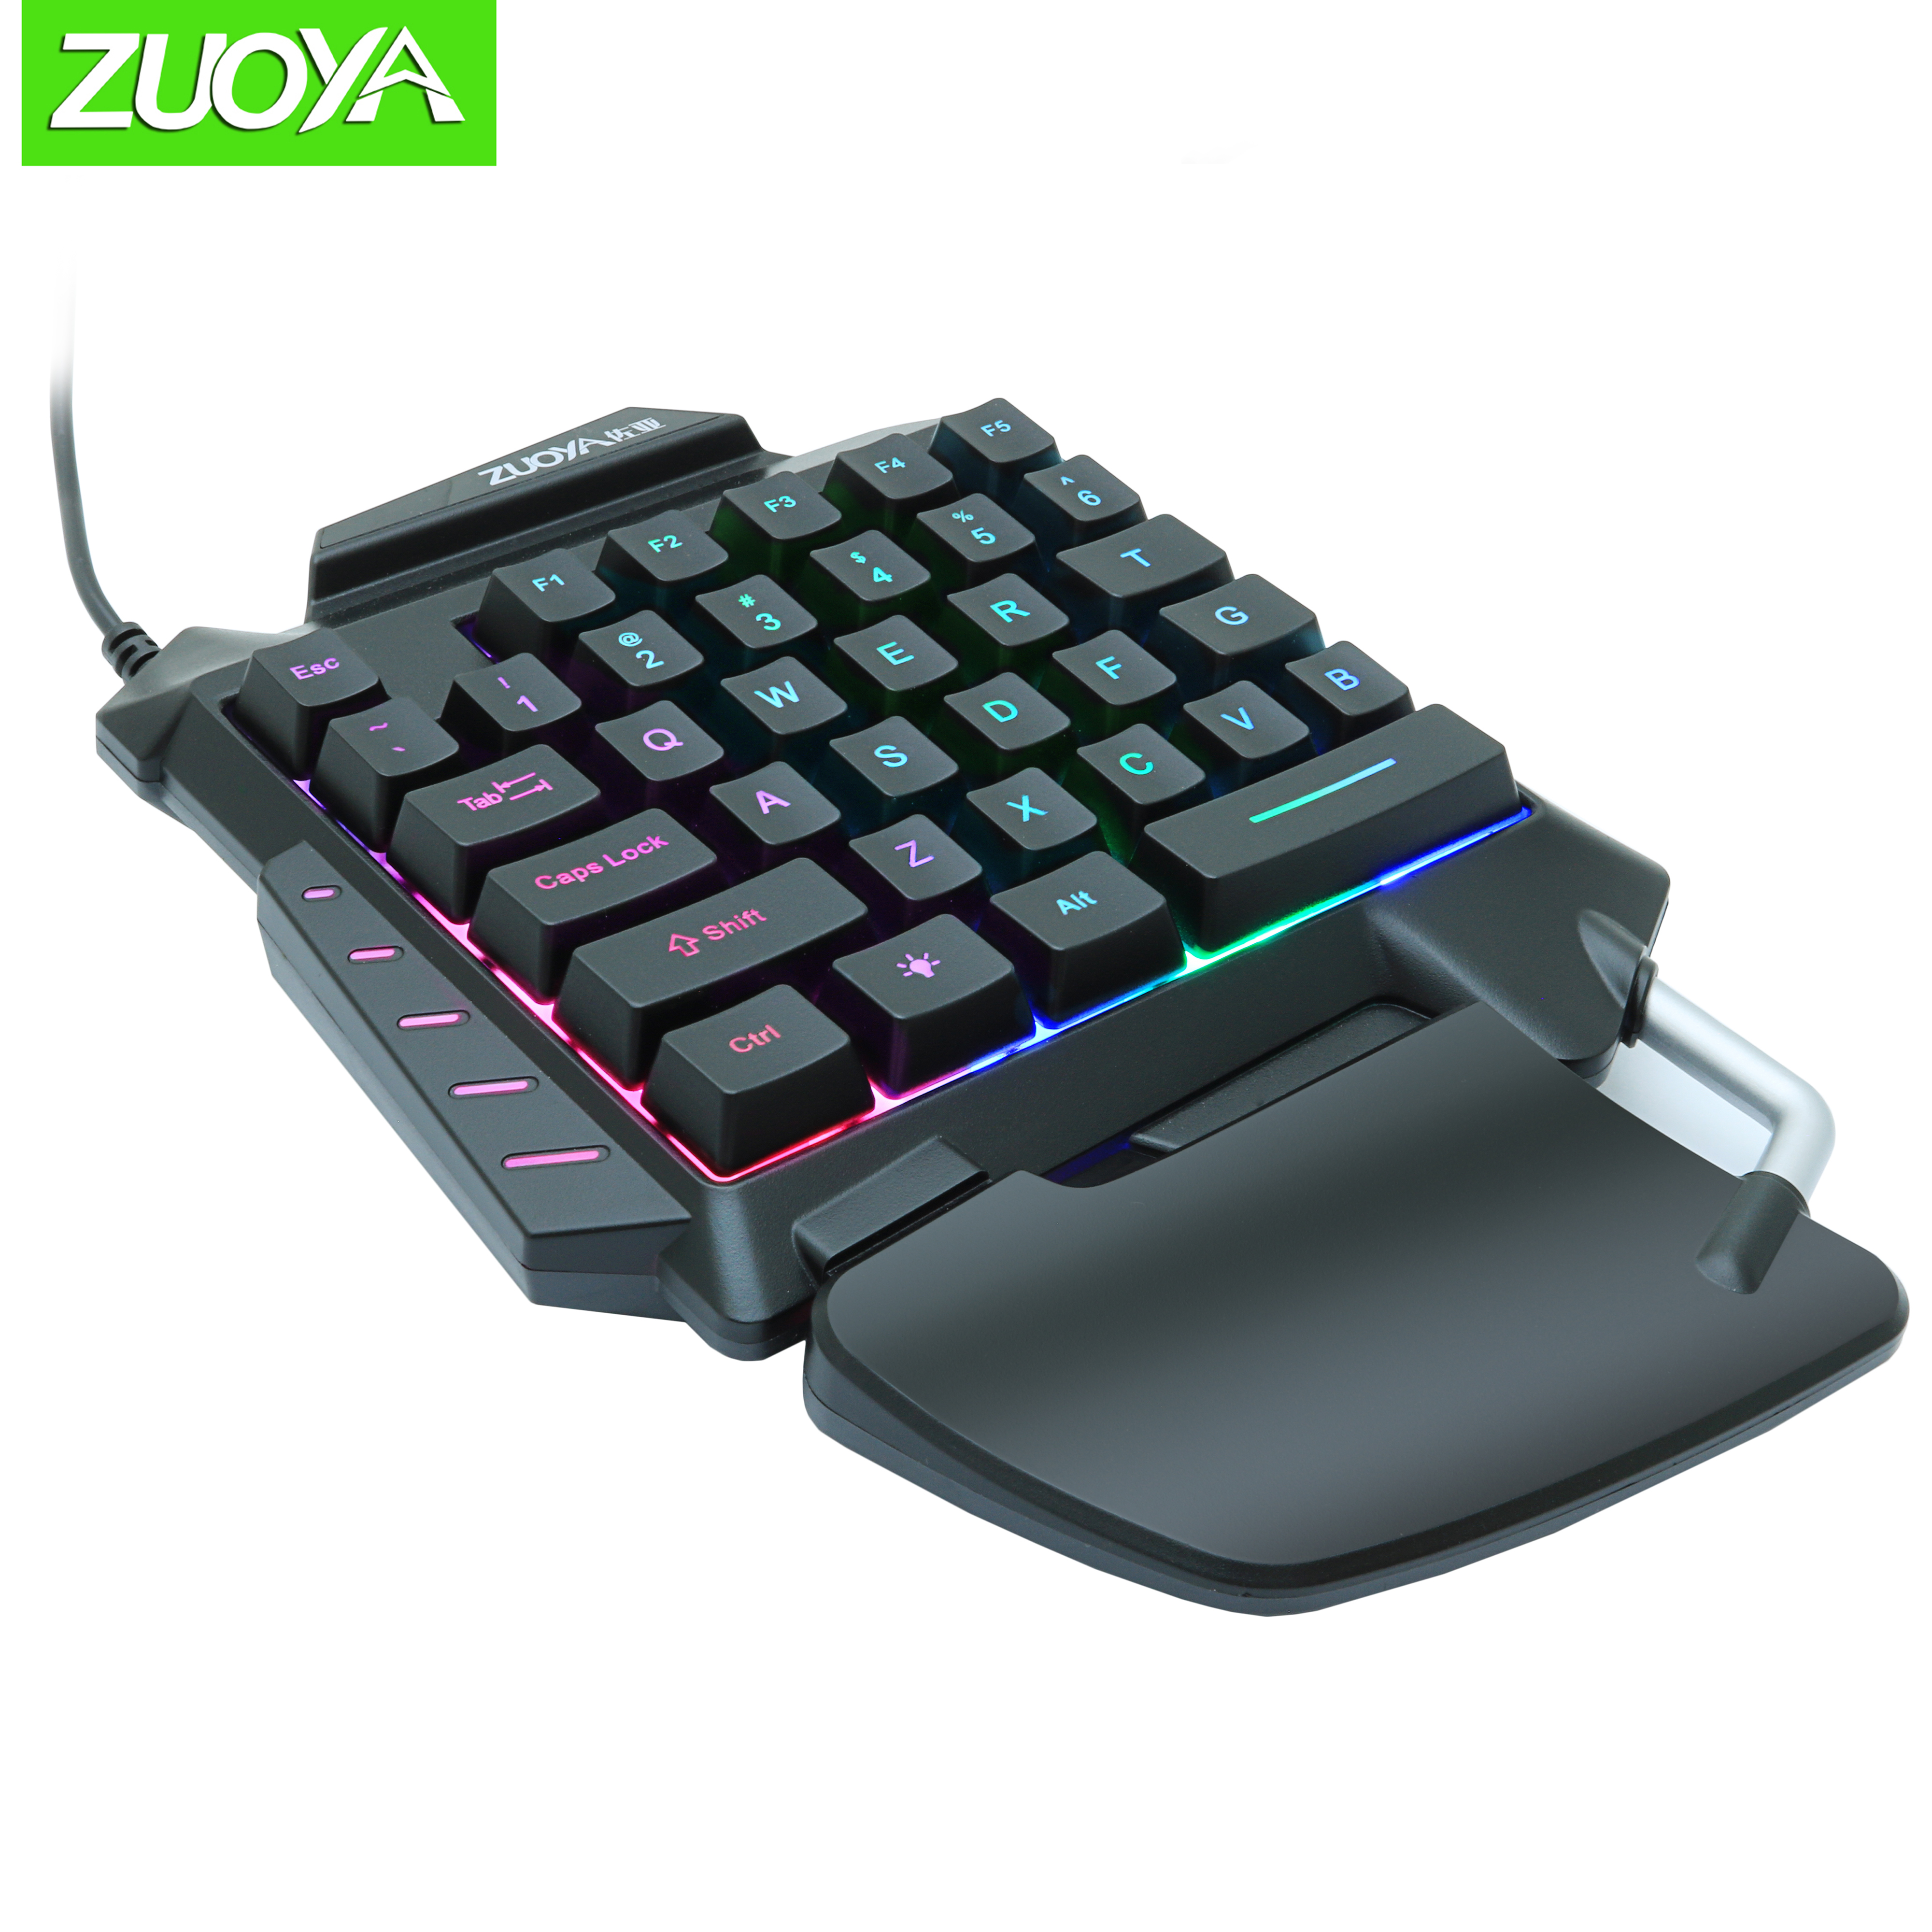 ZUOYA Single Handed Gaming Membrane Keyboard 35 Keys One Hand Ergonomic Game Keypad G92 For PC Laptop Pro PUBG Gamer